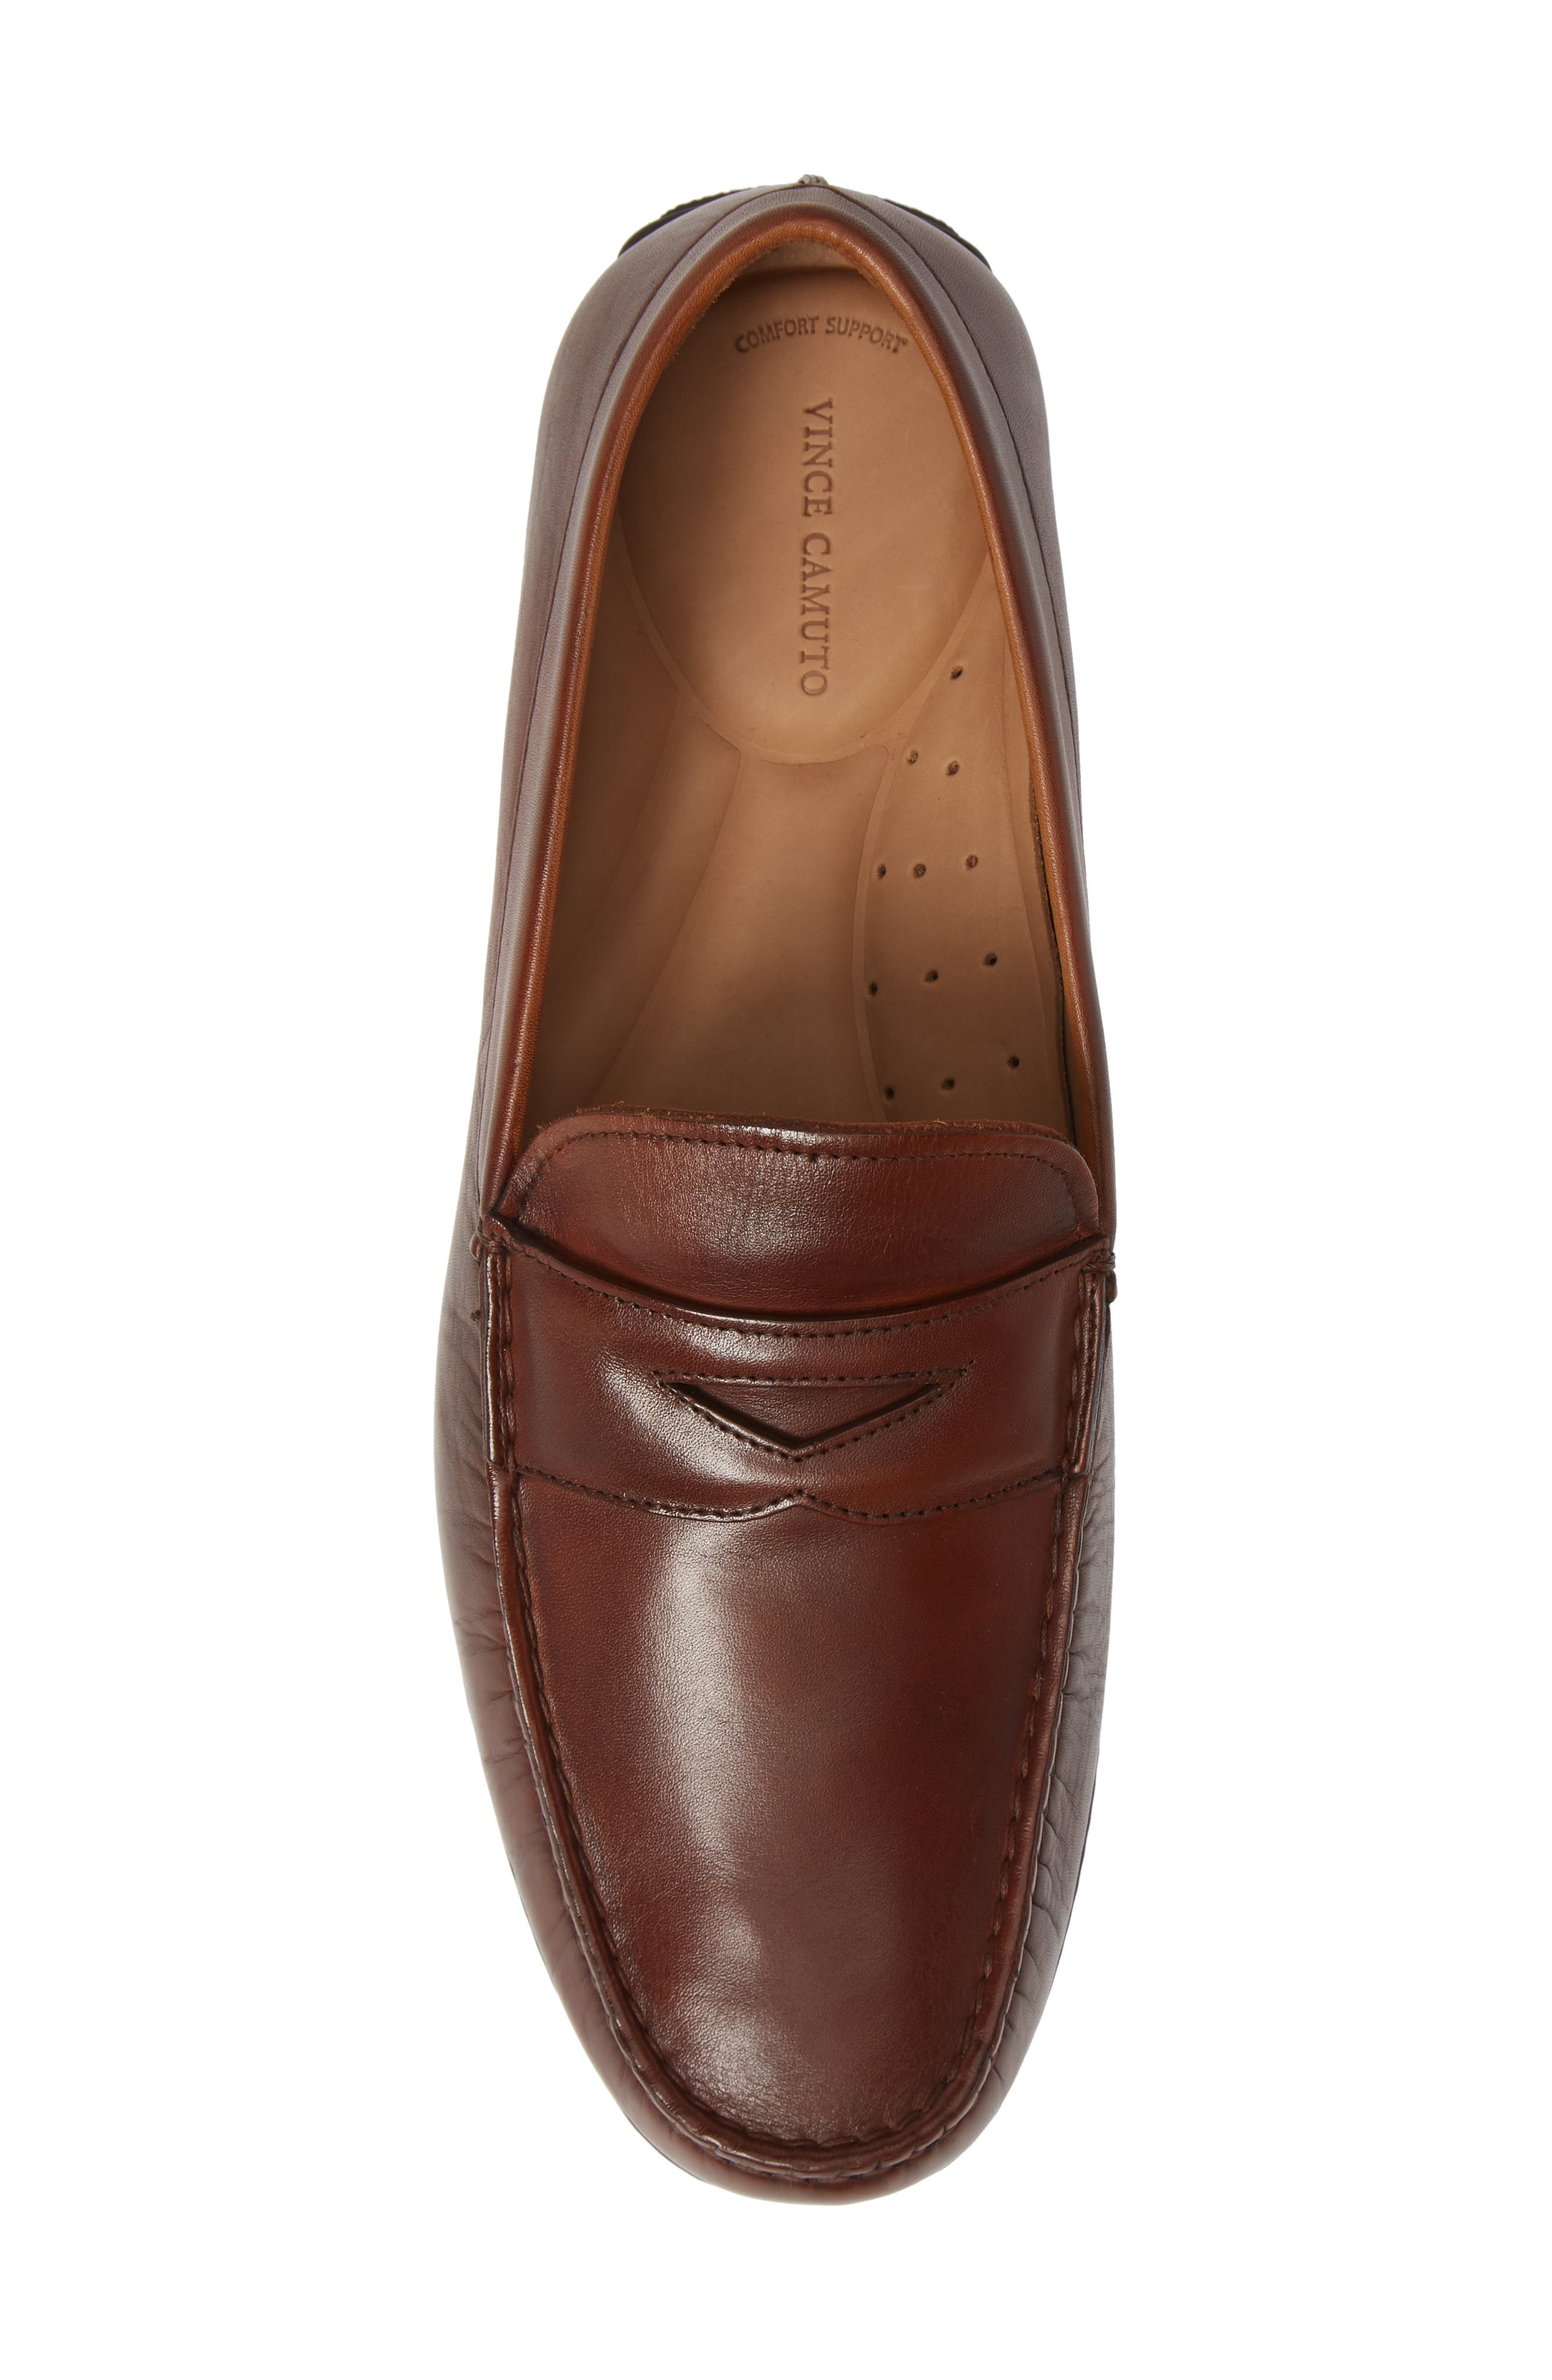 VINCE CAMUTO, Ditto Driving Shoe, Alternate thumbnail 5, color, COGNAC LEATHER